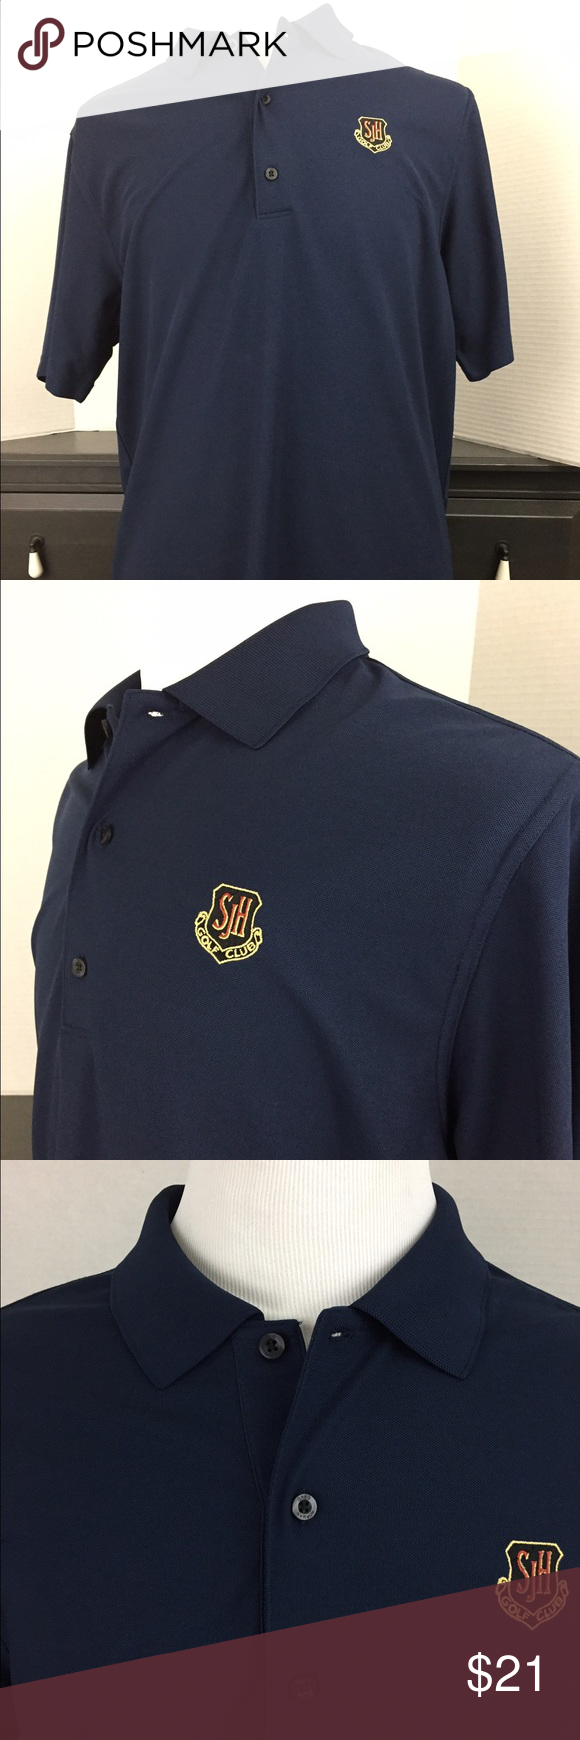 Greg Norman Golf 🏌Polo Play Dry - Blue - Large This gorgeous deep blue polo is a standout that goes with everything, and the no-wrinkle Play Dry feature makes this casual shirt truly comfortable.  No flaws. Size L. Built to last.  Brand: Greg Norman Size: L  Condition: Excellent  Category: Casual Shirts  Color: Deep Blue Size Type: Regular Size (Men's): Large Sleeve Length: Short Sleeve Style: Polo, Rugby Fit: Classic Fit Material: 100% Polyester   Measurements: 24.5 inches Total Length 32…